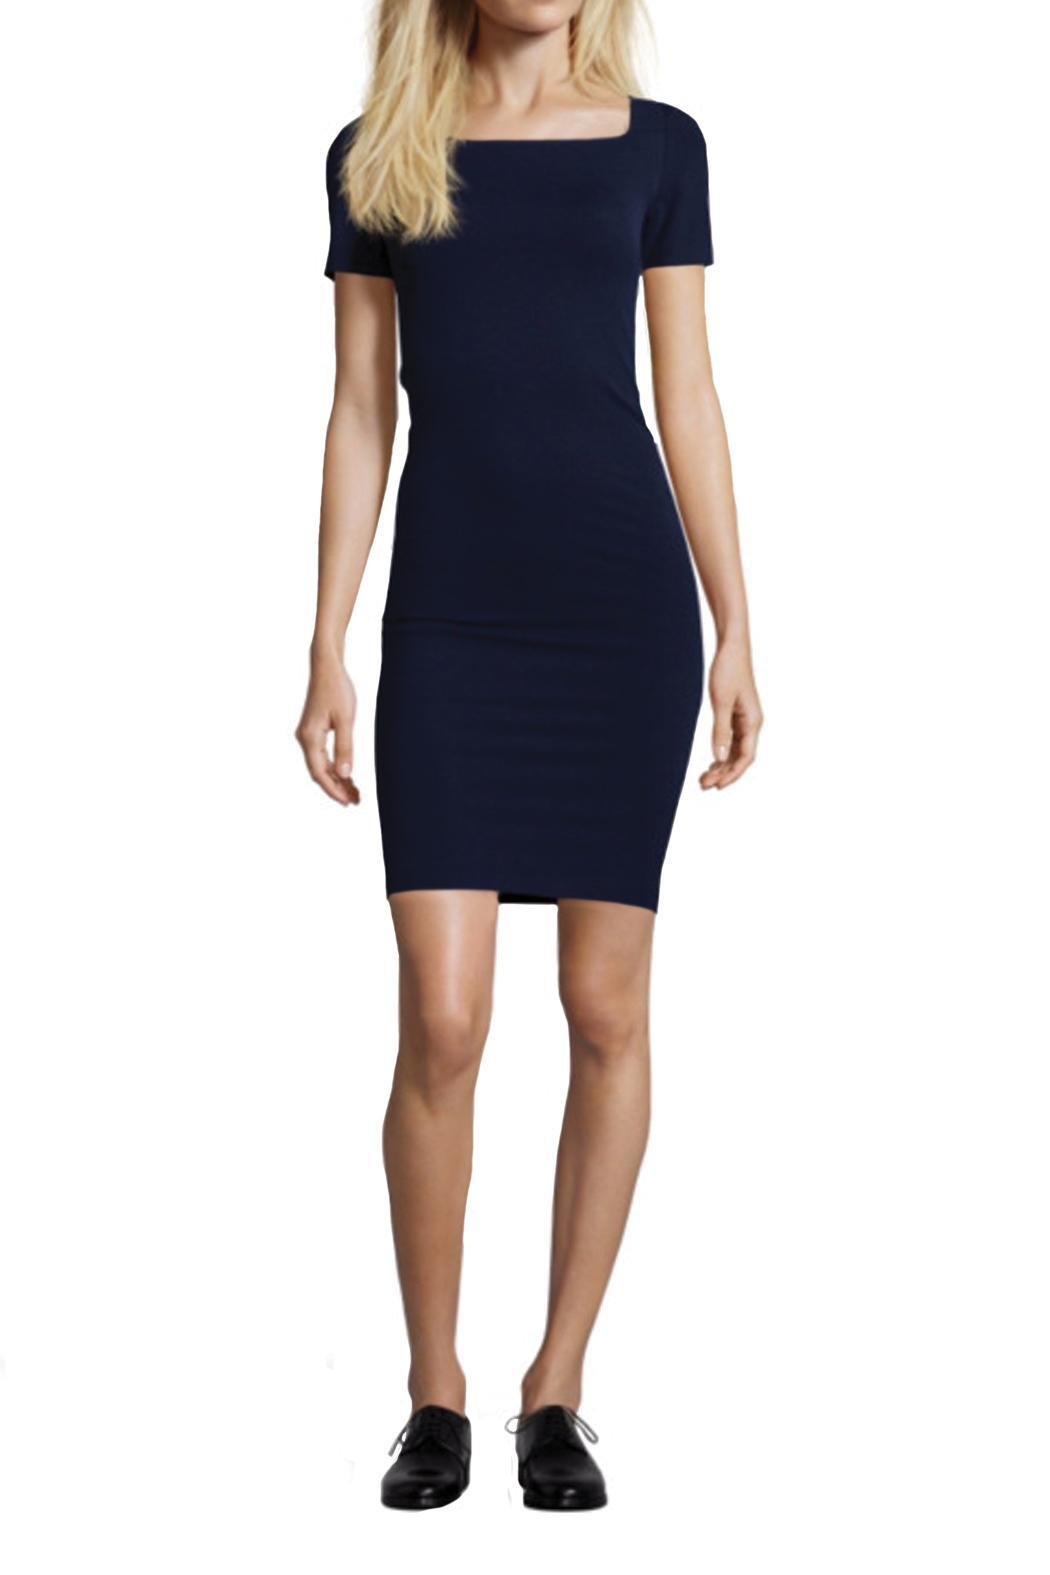 hotel particulier Navy Dress - Main Image